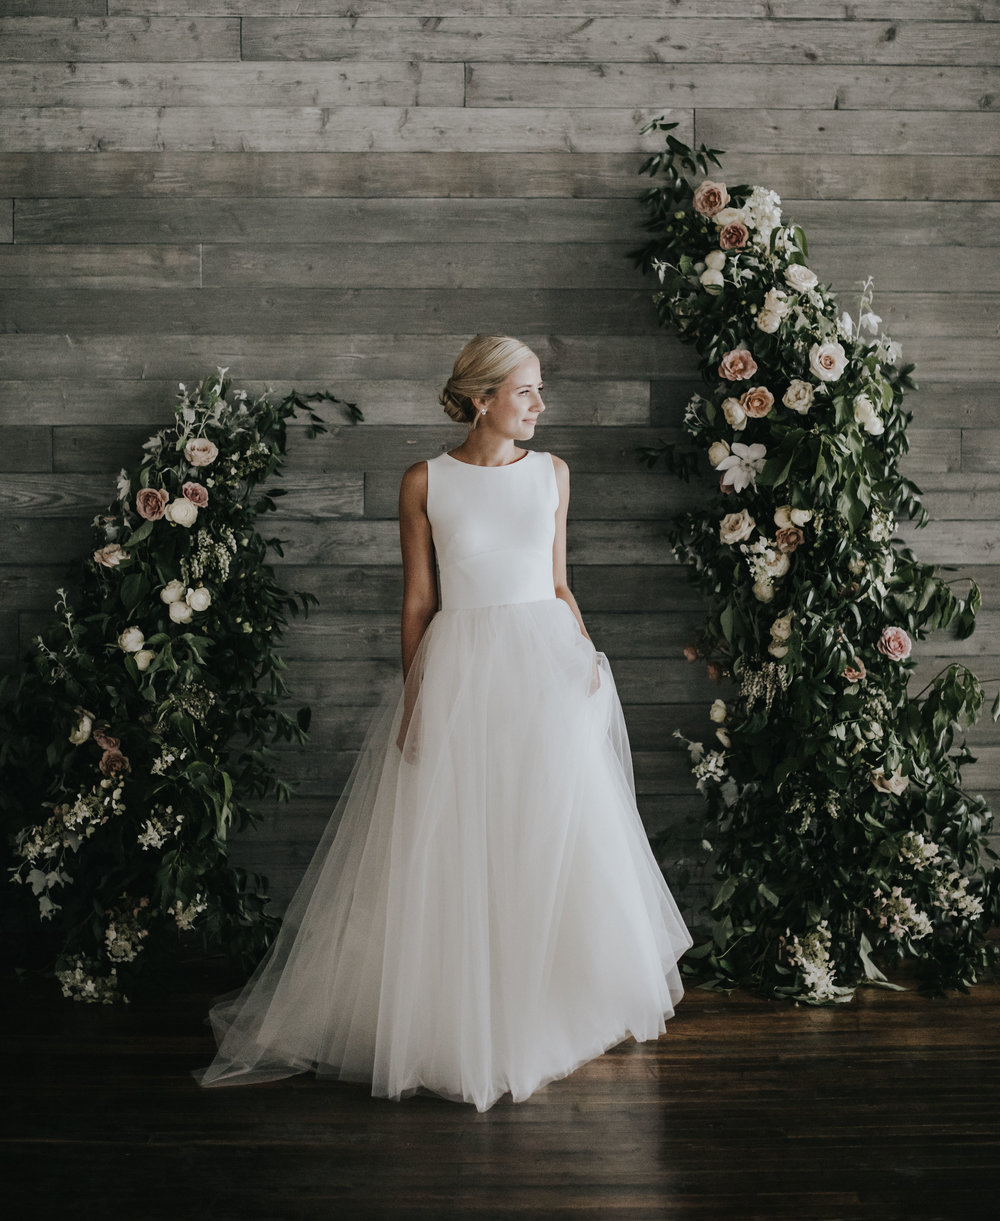 Kindred Blooms | Minneapolis Wedding Florist